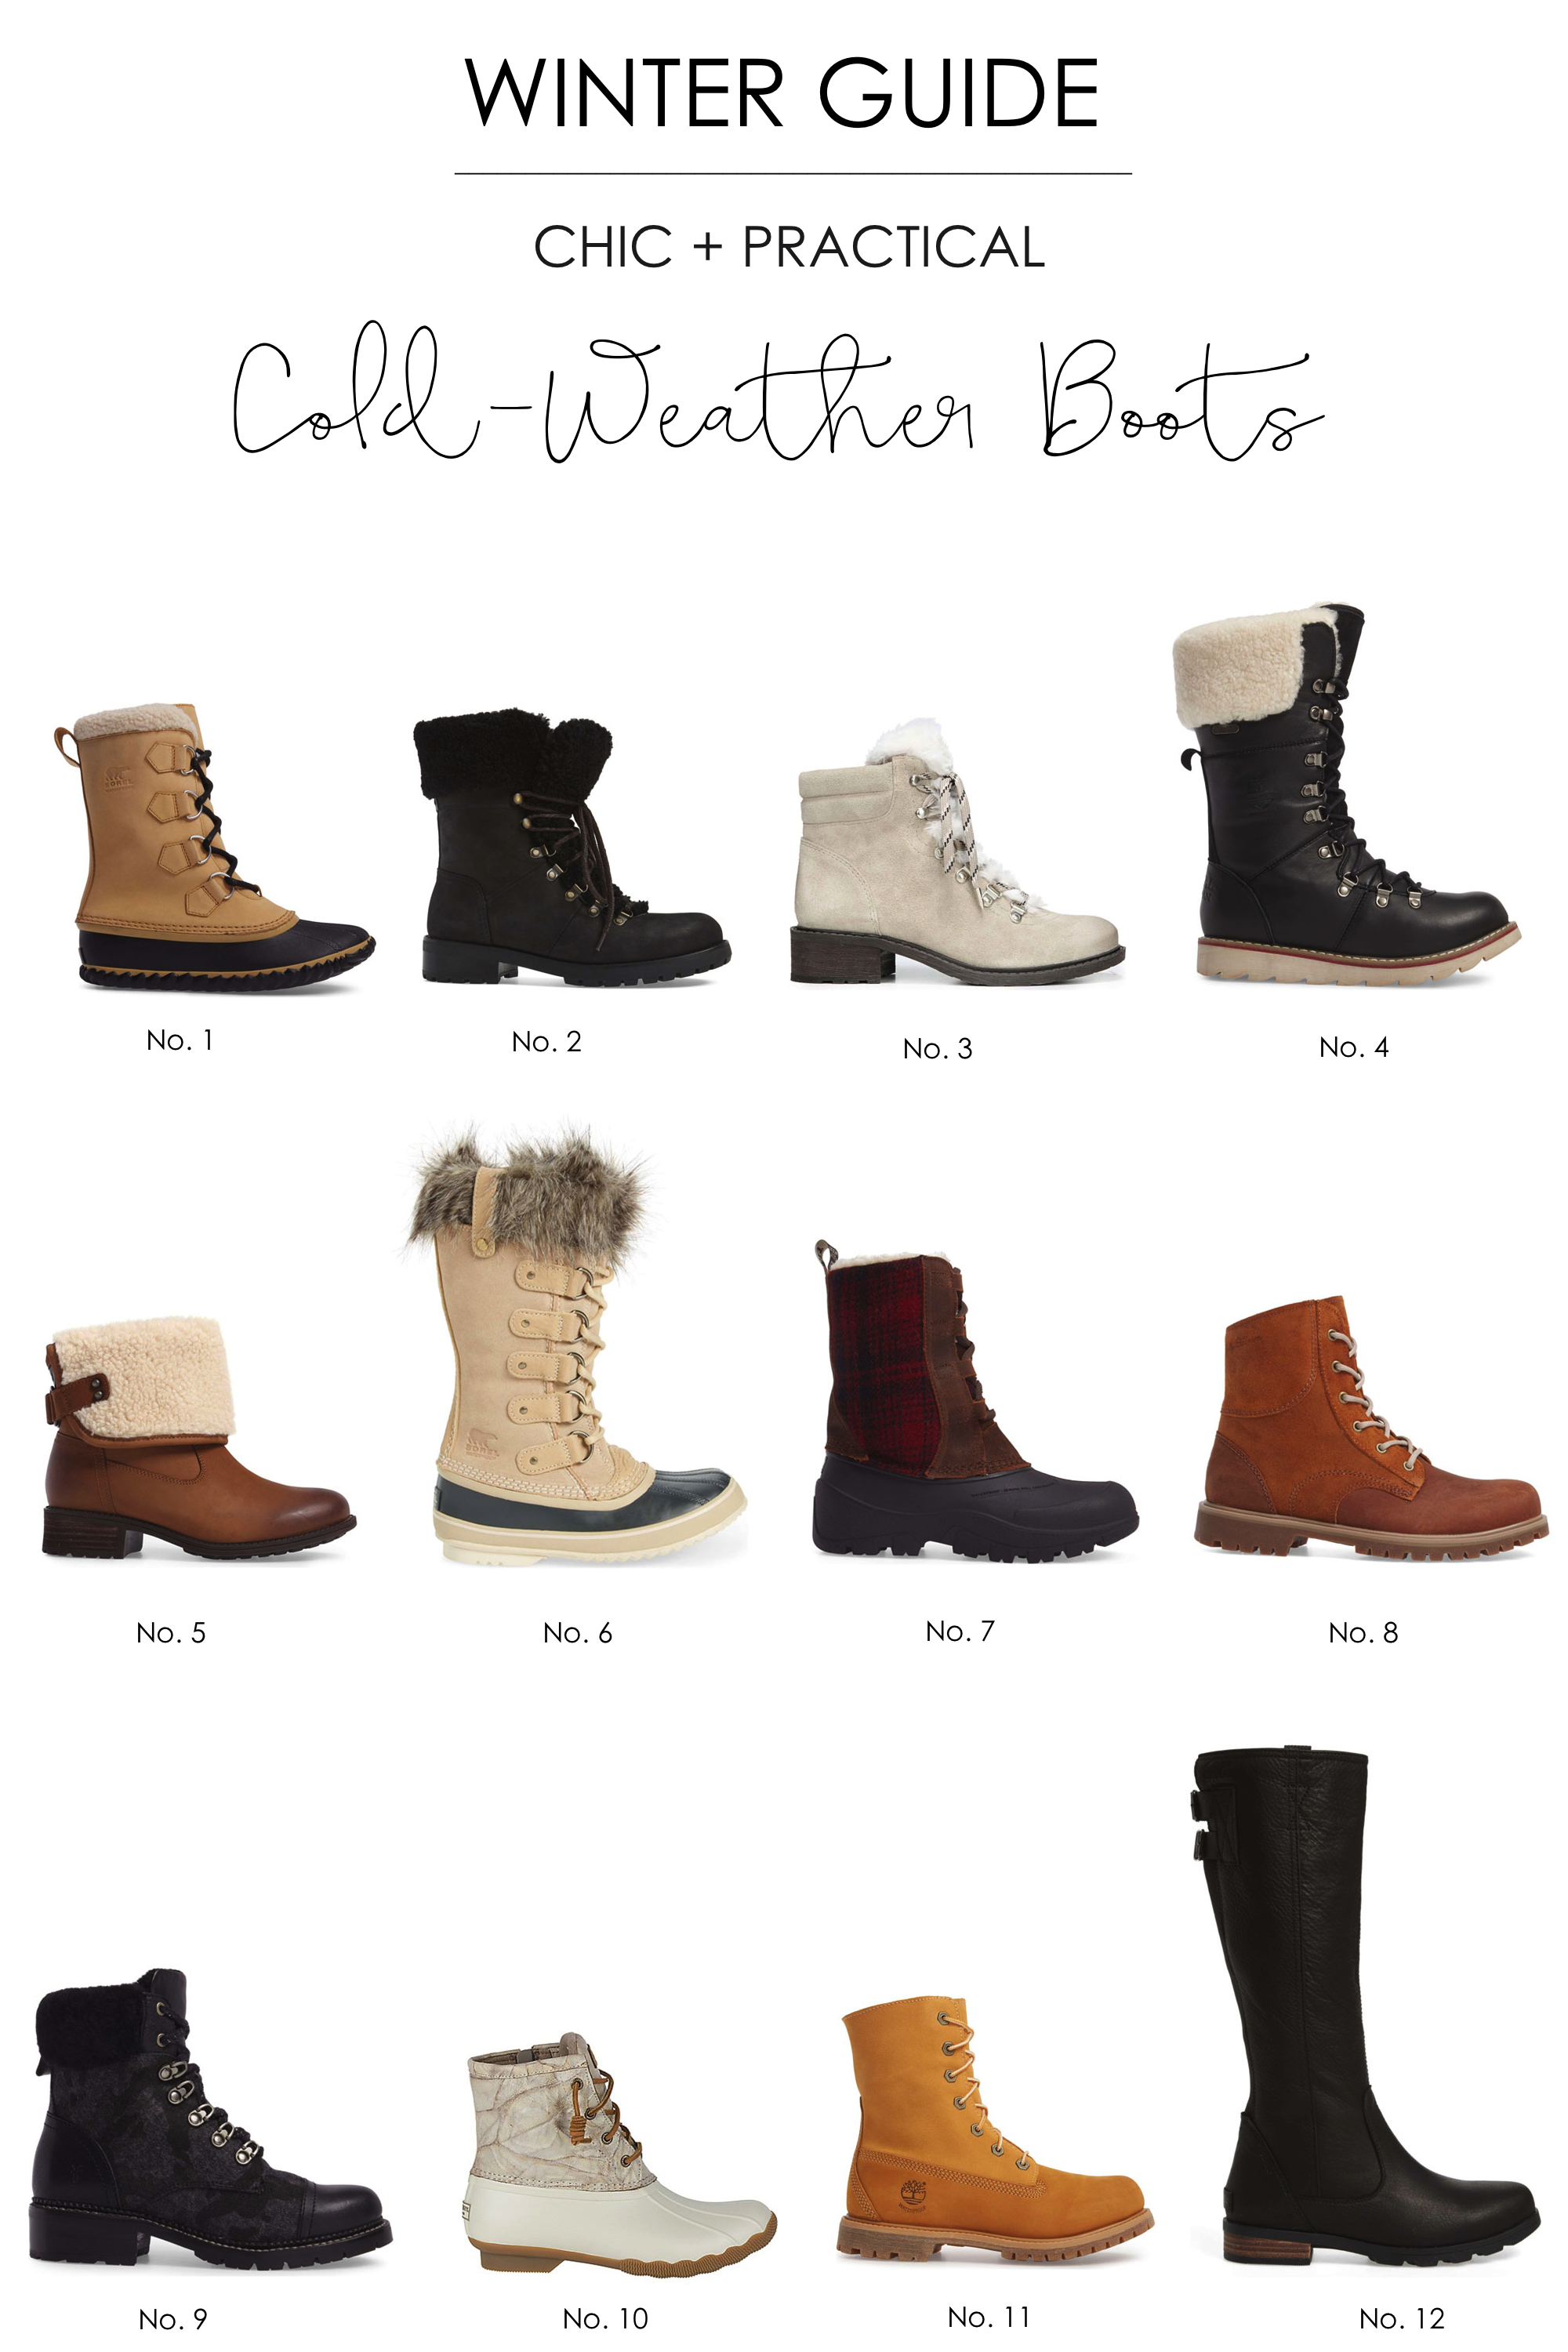 You don't have to sacrifice style for warmth when it comes to winter boots. Here's a guide to the best boots that will keep your feet toasty and dry! | glitterinc.com | @glitterinc - A Guide to the Best Winter Cold Weather Boots by popular North Carolina style blogger Glitter, Inc.